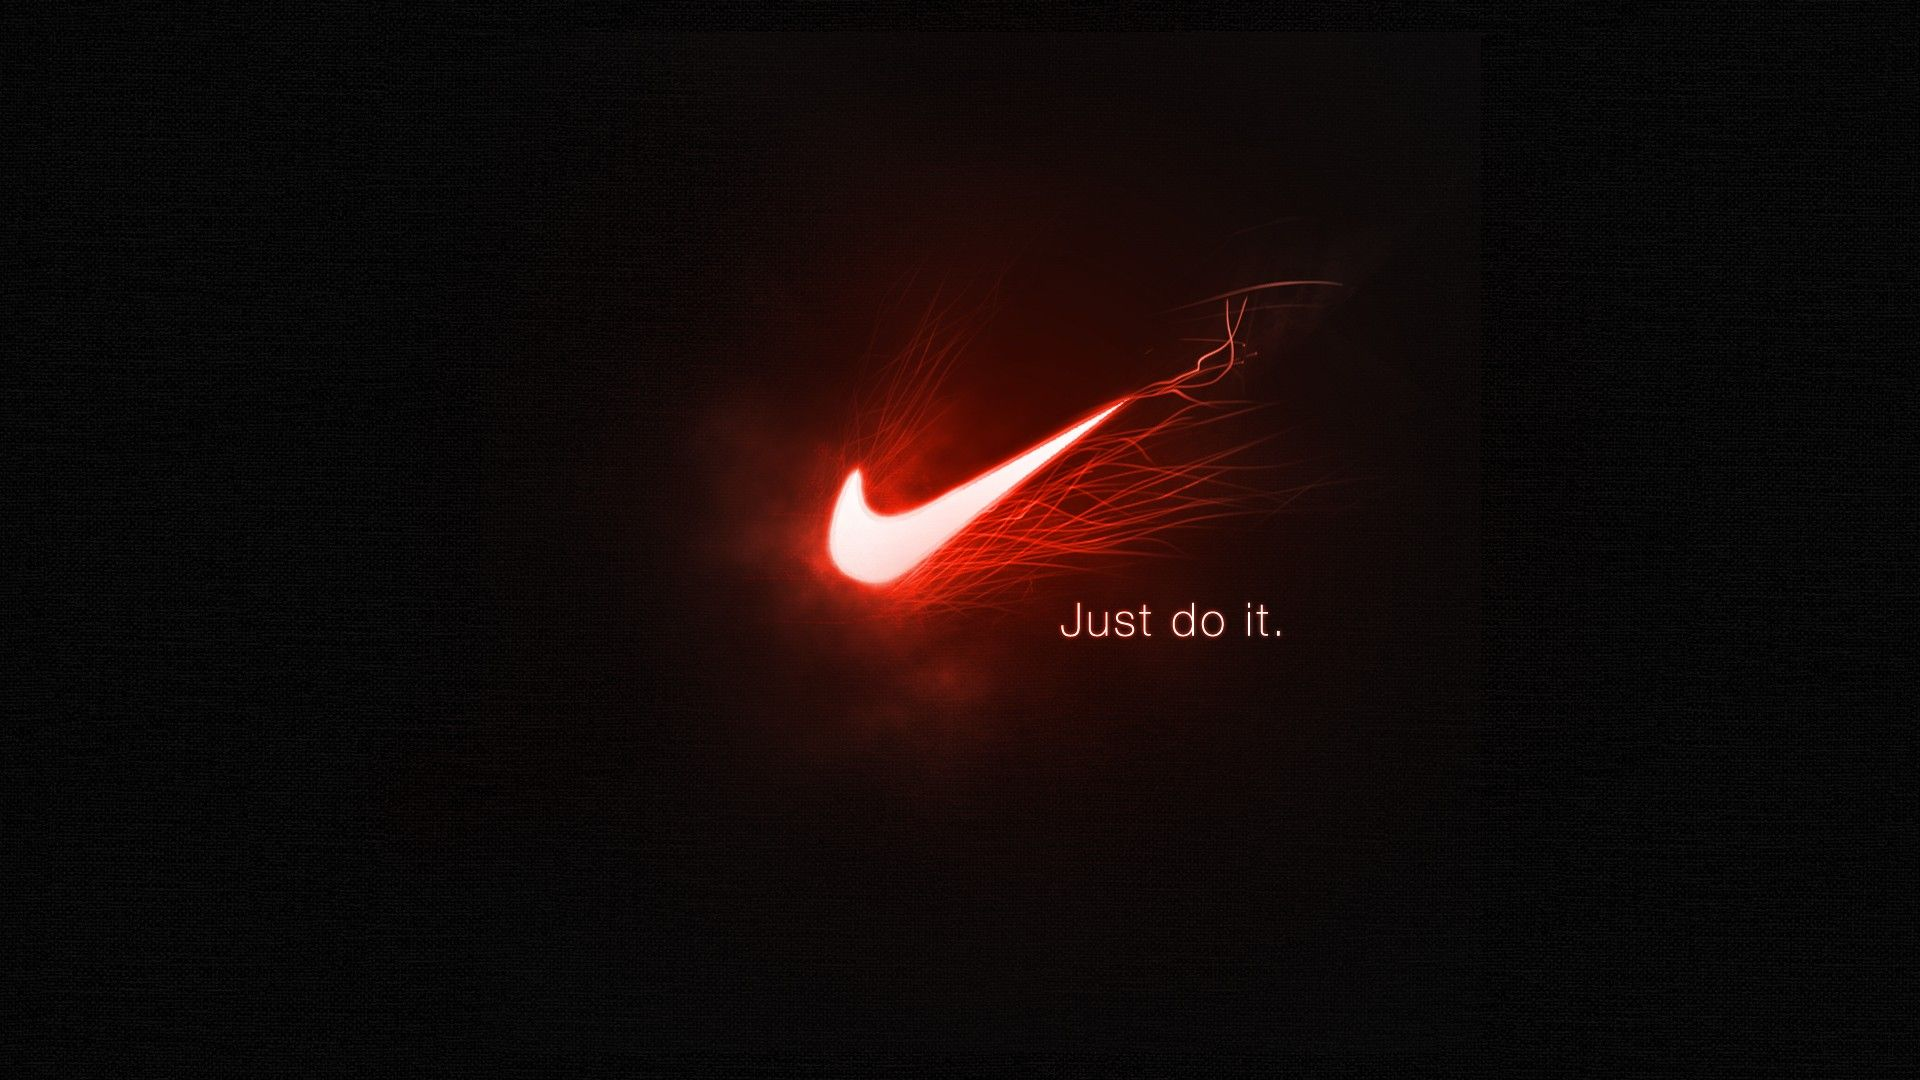 Just Do It Nike Wallpaper Nike Logo Wallpapers Just Do It Wallpapers